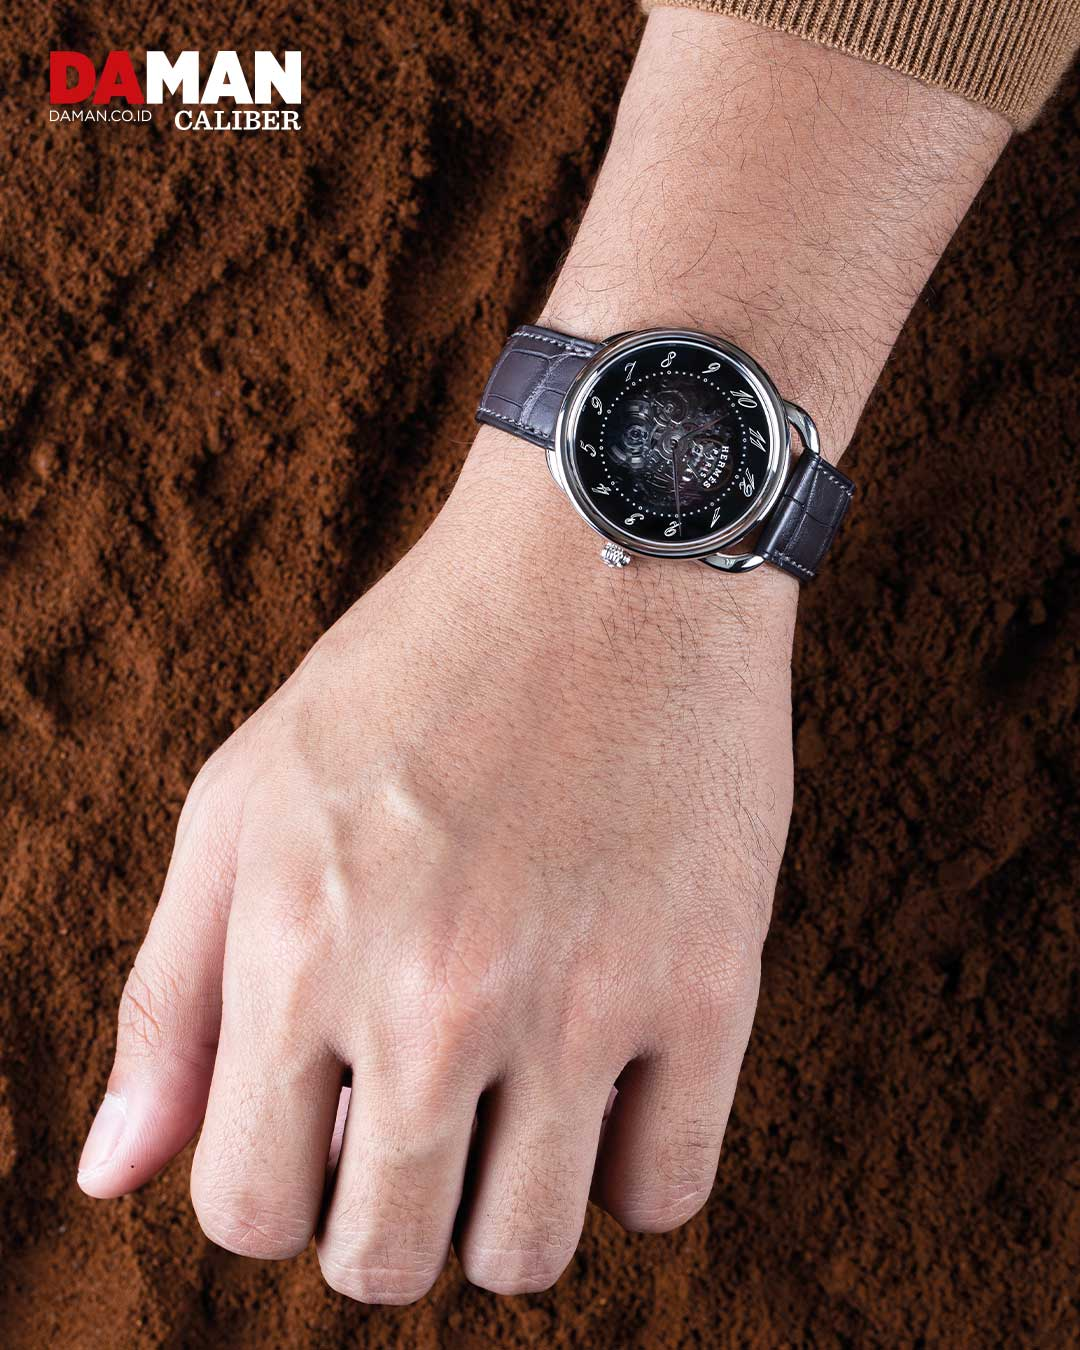 Arceau Squelette in stainless steel with long single tour strap in matte black alligator leather